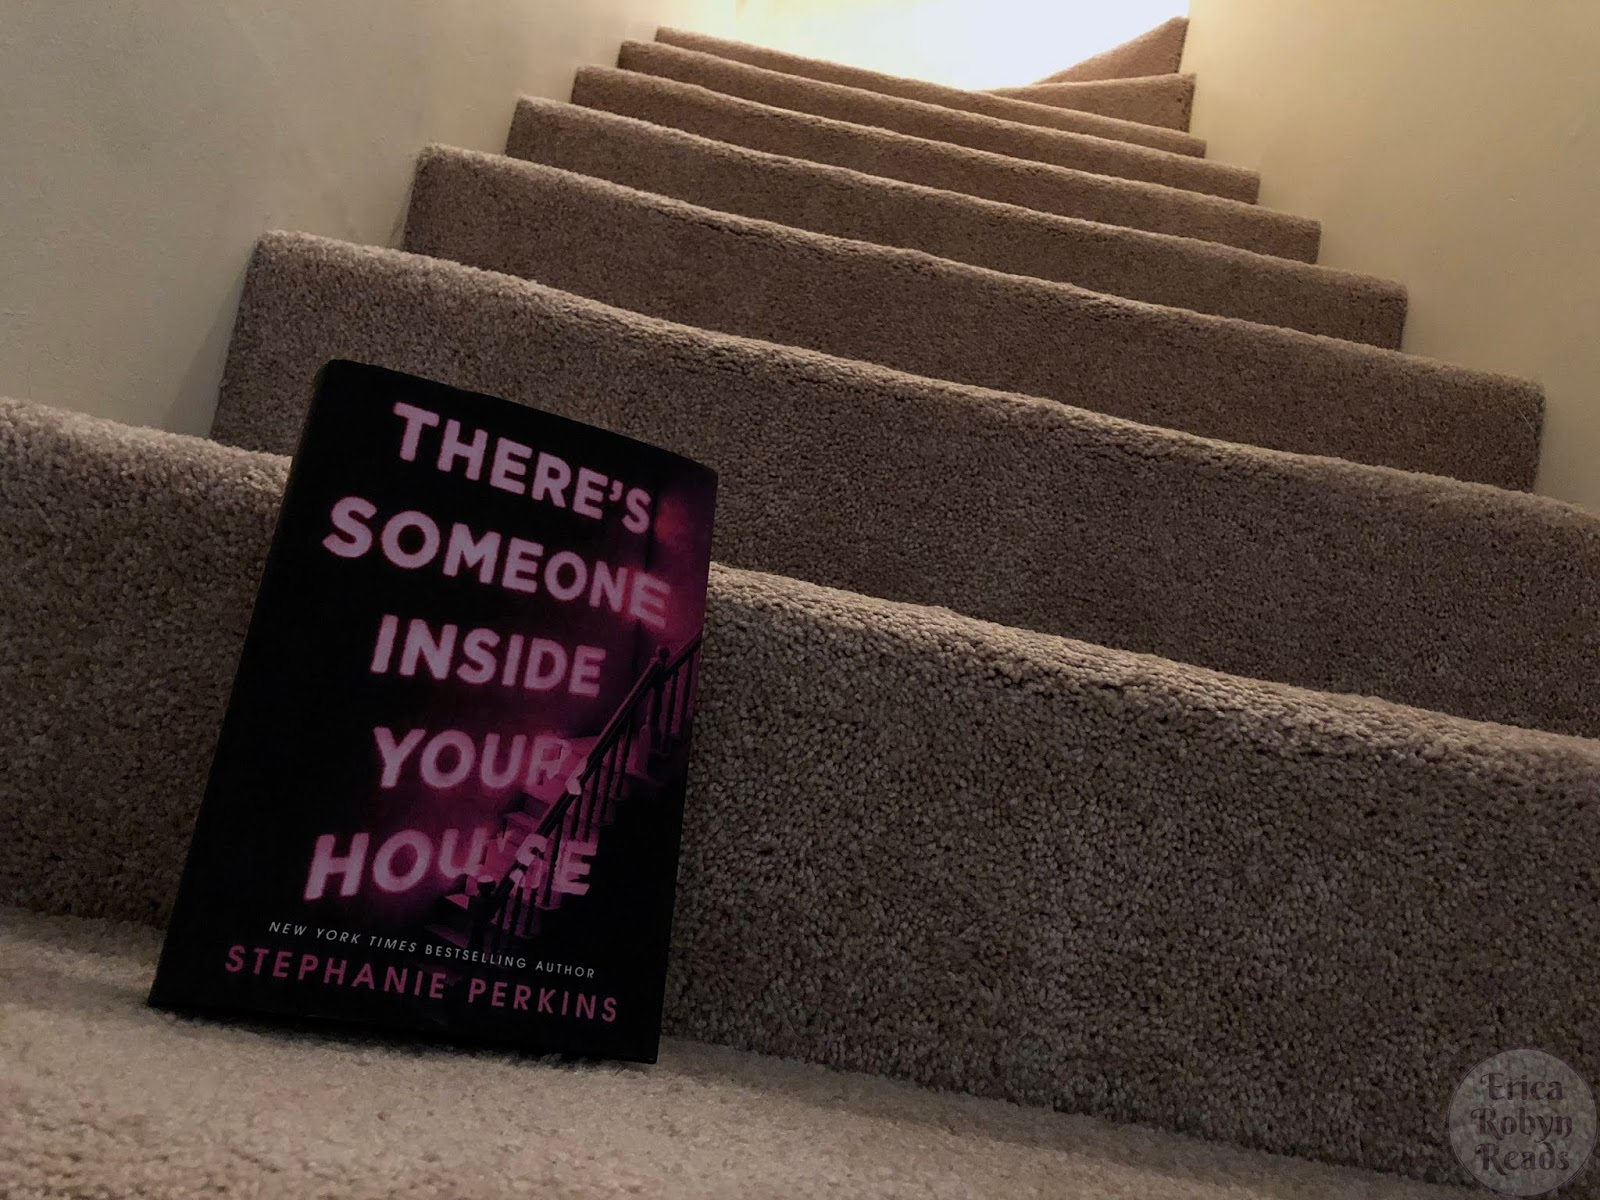 From consulting with a realtor to conducting your own search, here are some options available to you. Erica Robyn Reads: Book Review There's Someone Inside ...